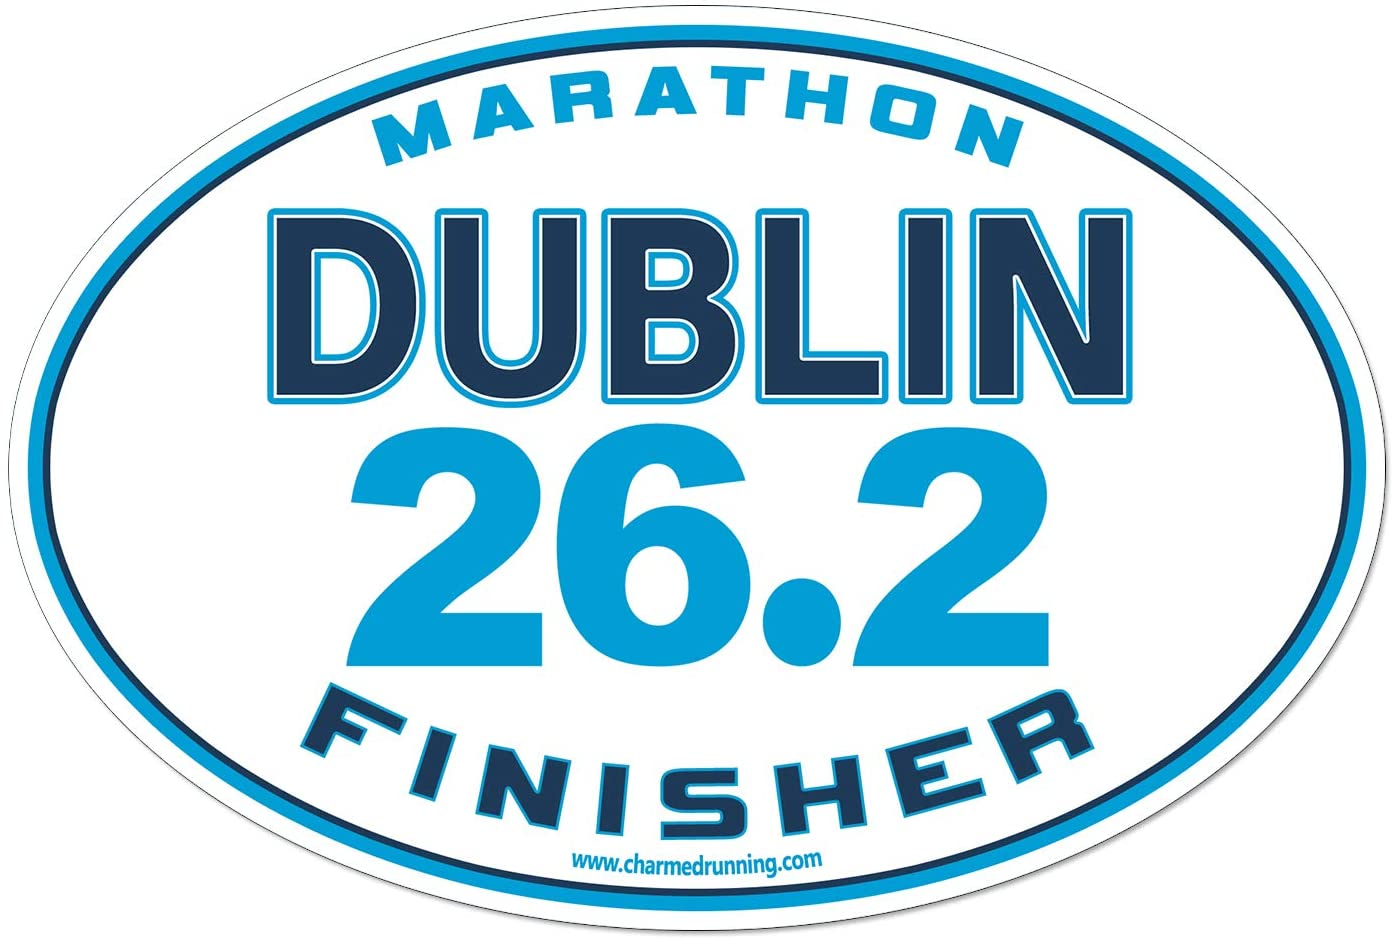 Charmed Running Dublin Marathon Finisher 26.2 Car Magnet